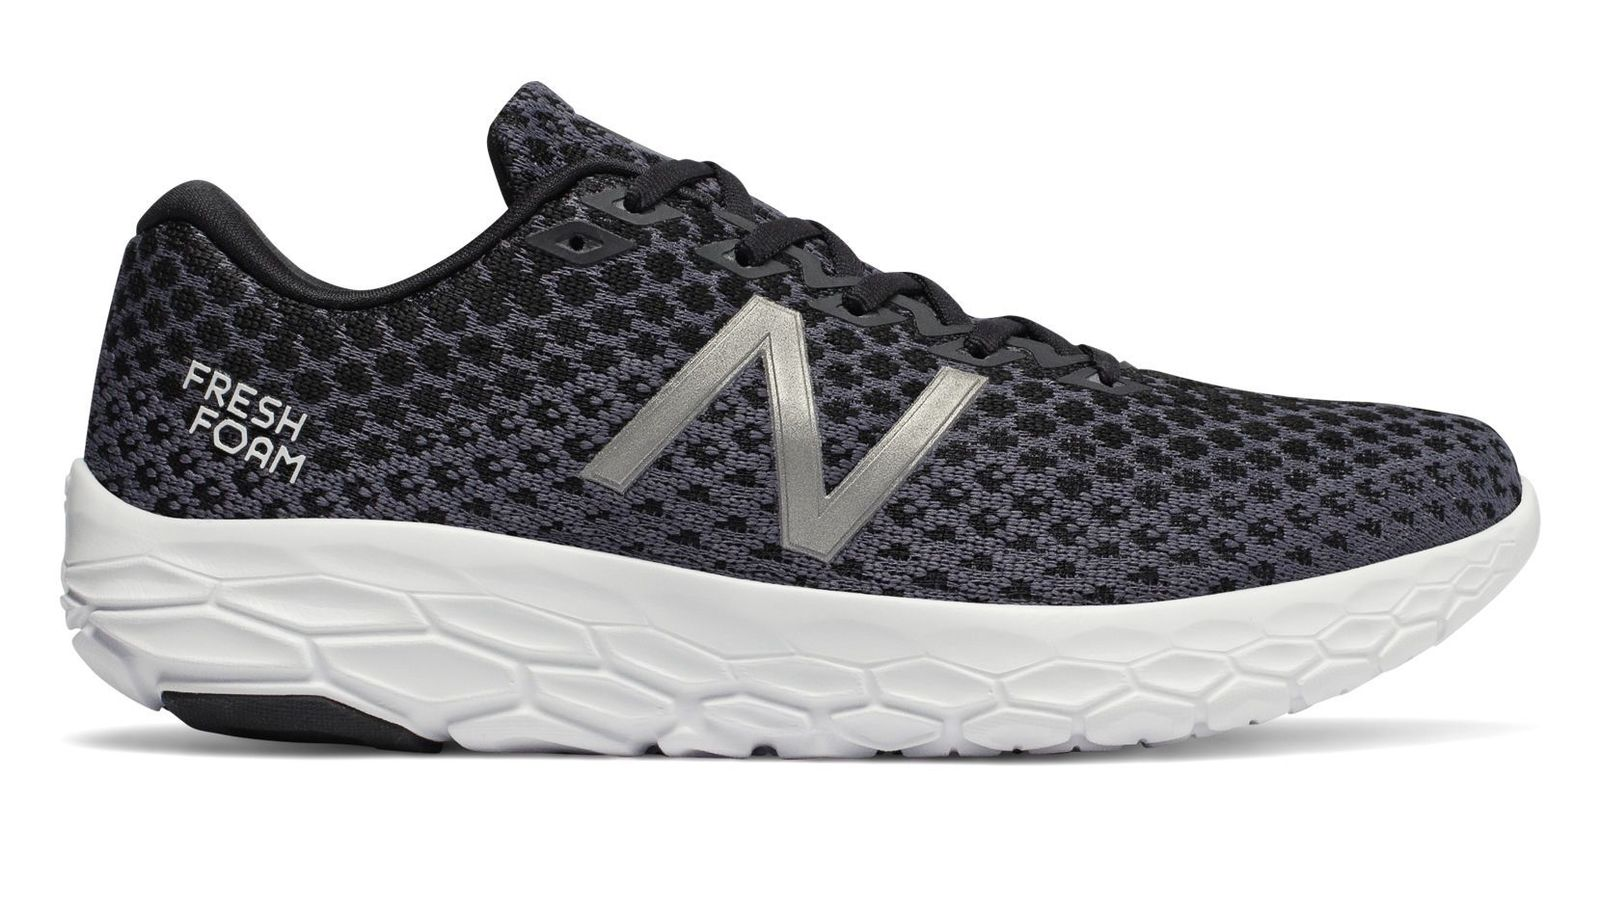 New Balance MBECNBK Beacon V1 Fresh Foam Black White Men's Running shoes